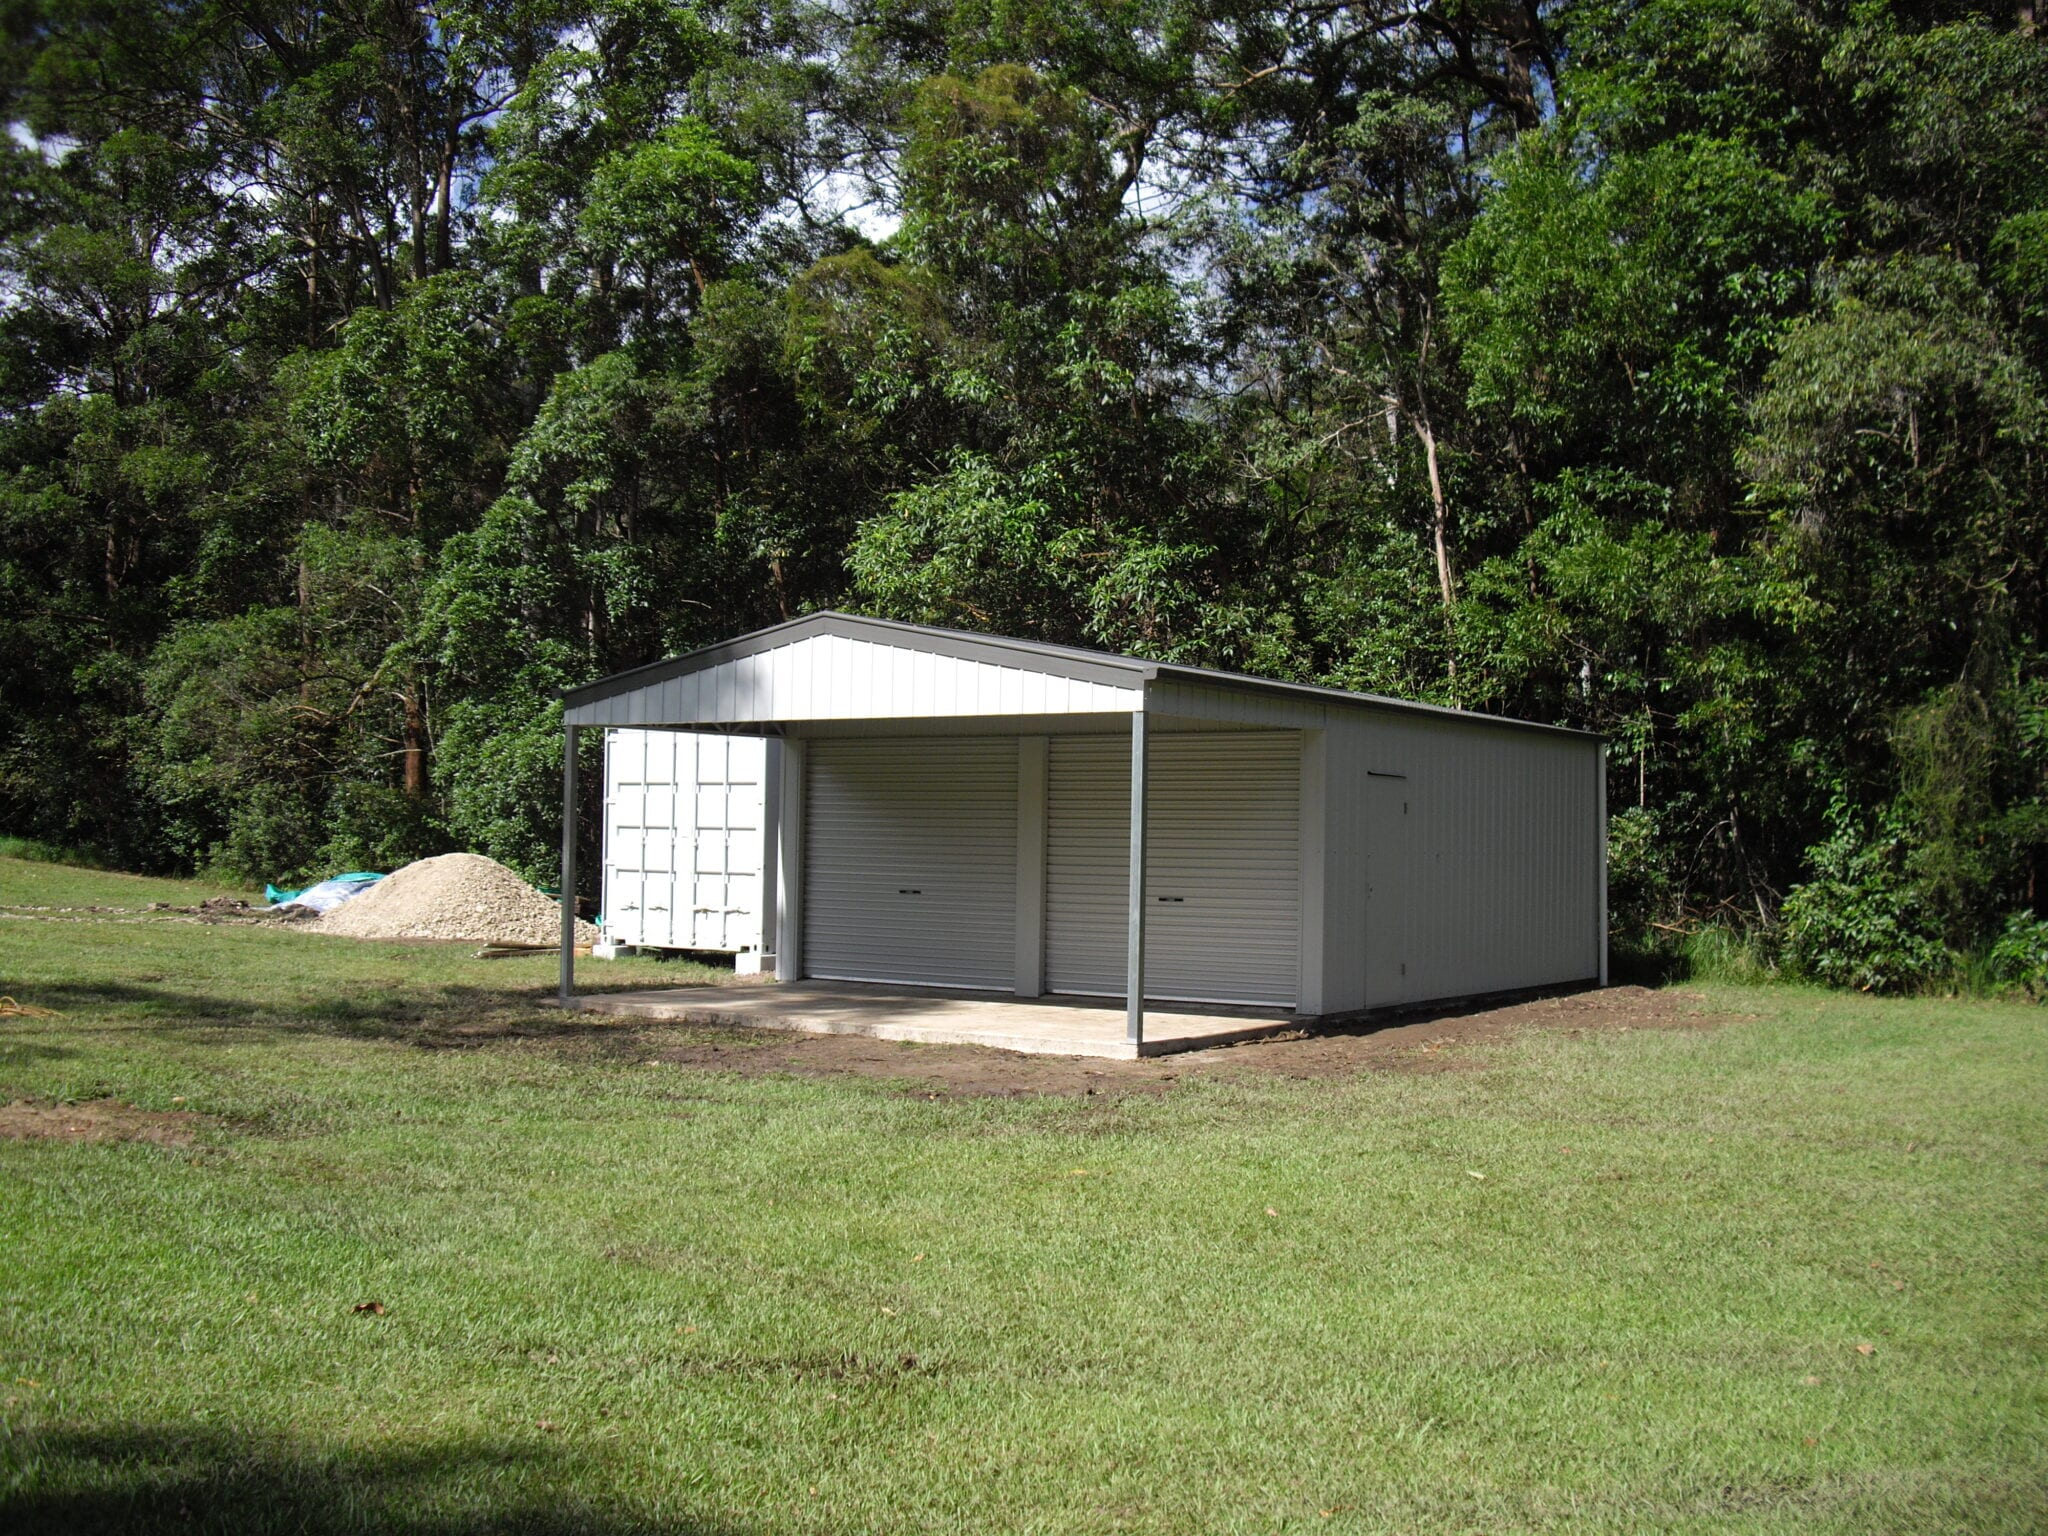 Gable white shed 2xrd with owning